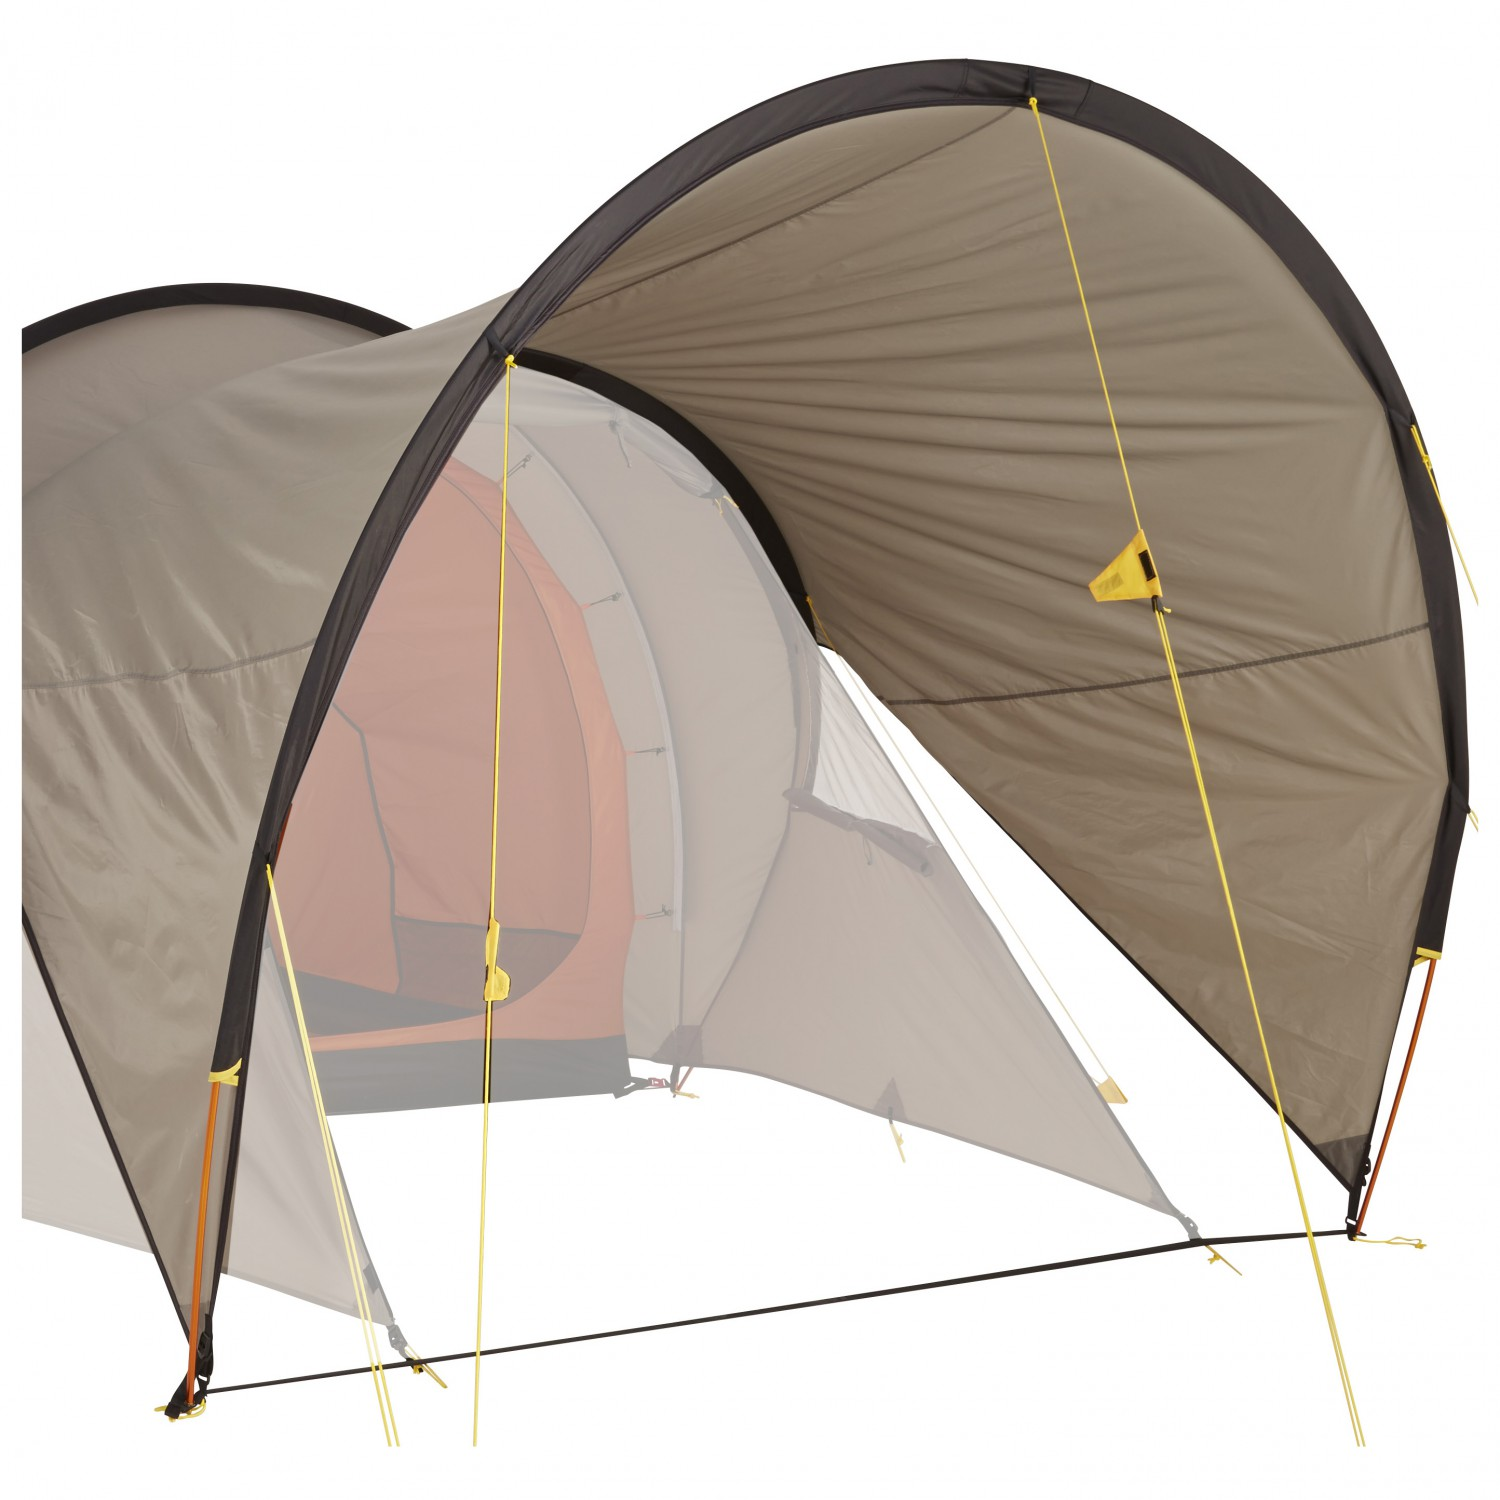 Wechsel - Voyager 3 Wing - Tent extension ...  sc 1 st  Alpinetrek & Wechsel Voyager 3 Wing - Tent Extension | Free UK Delivery ...